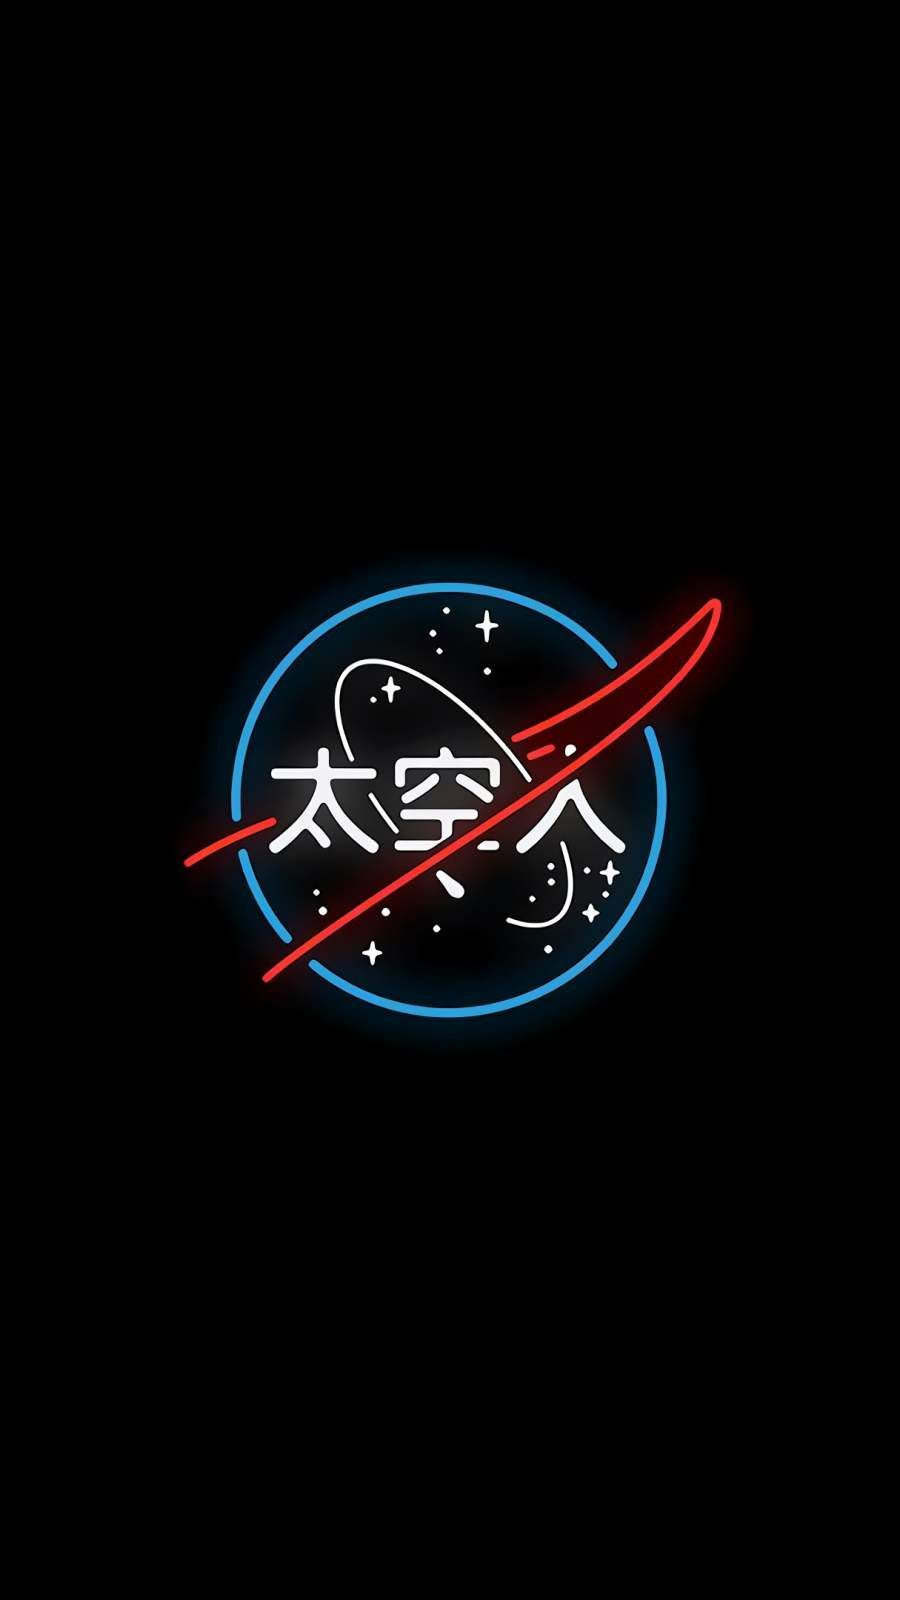 Japanese Nasa Iphone Wallpaper In 2020 Art Wallpaper Iphone